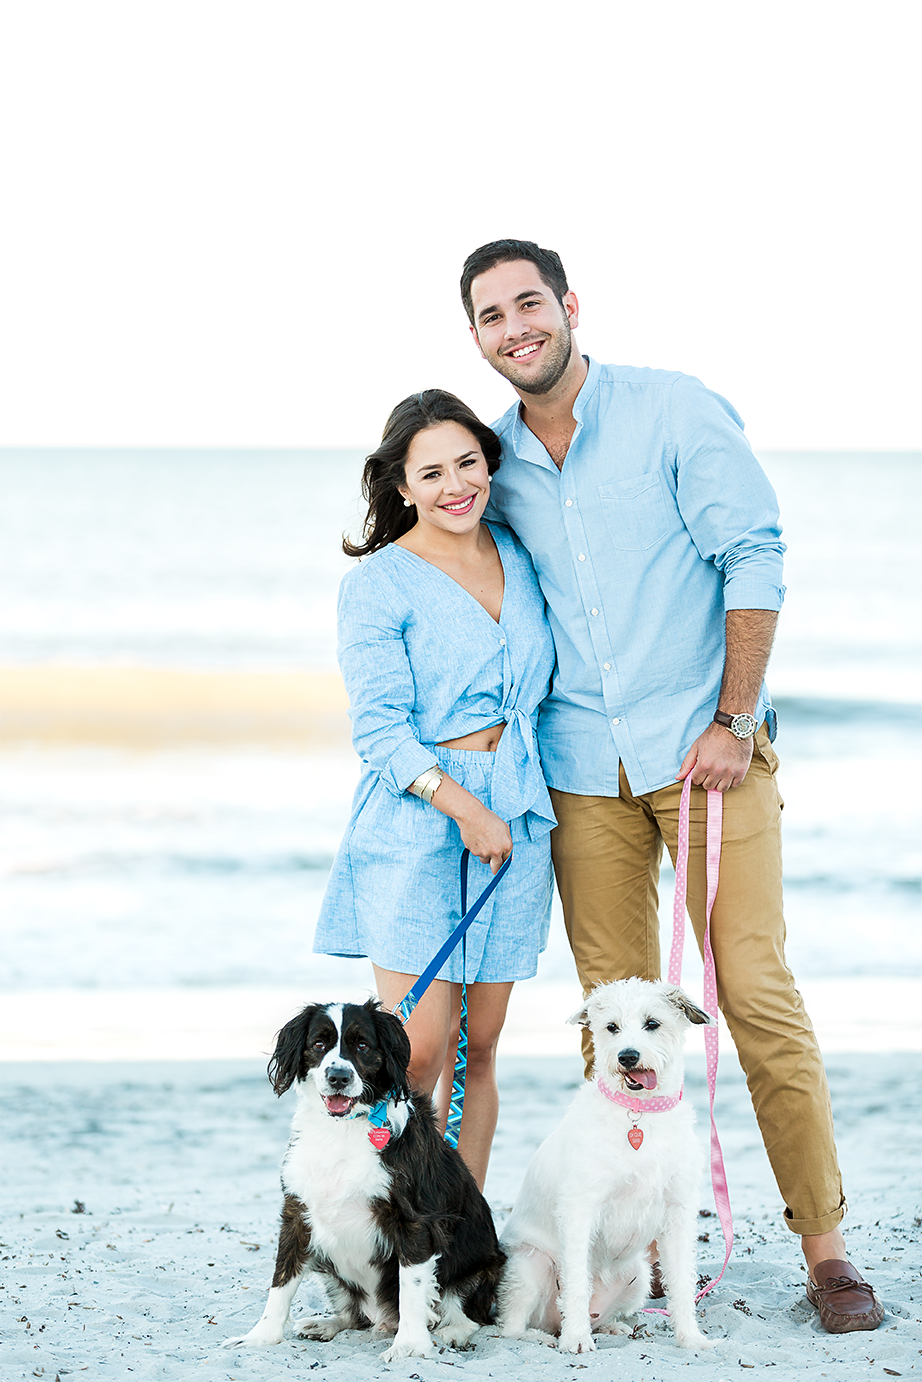 jacksonville beach engagement session with dogs